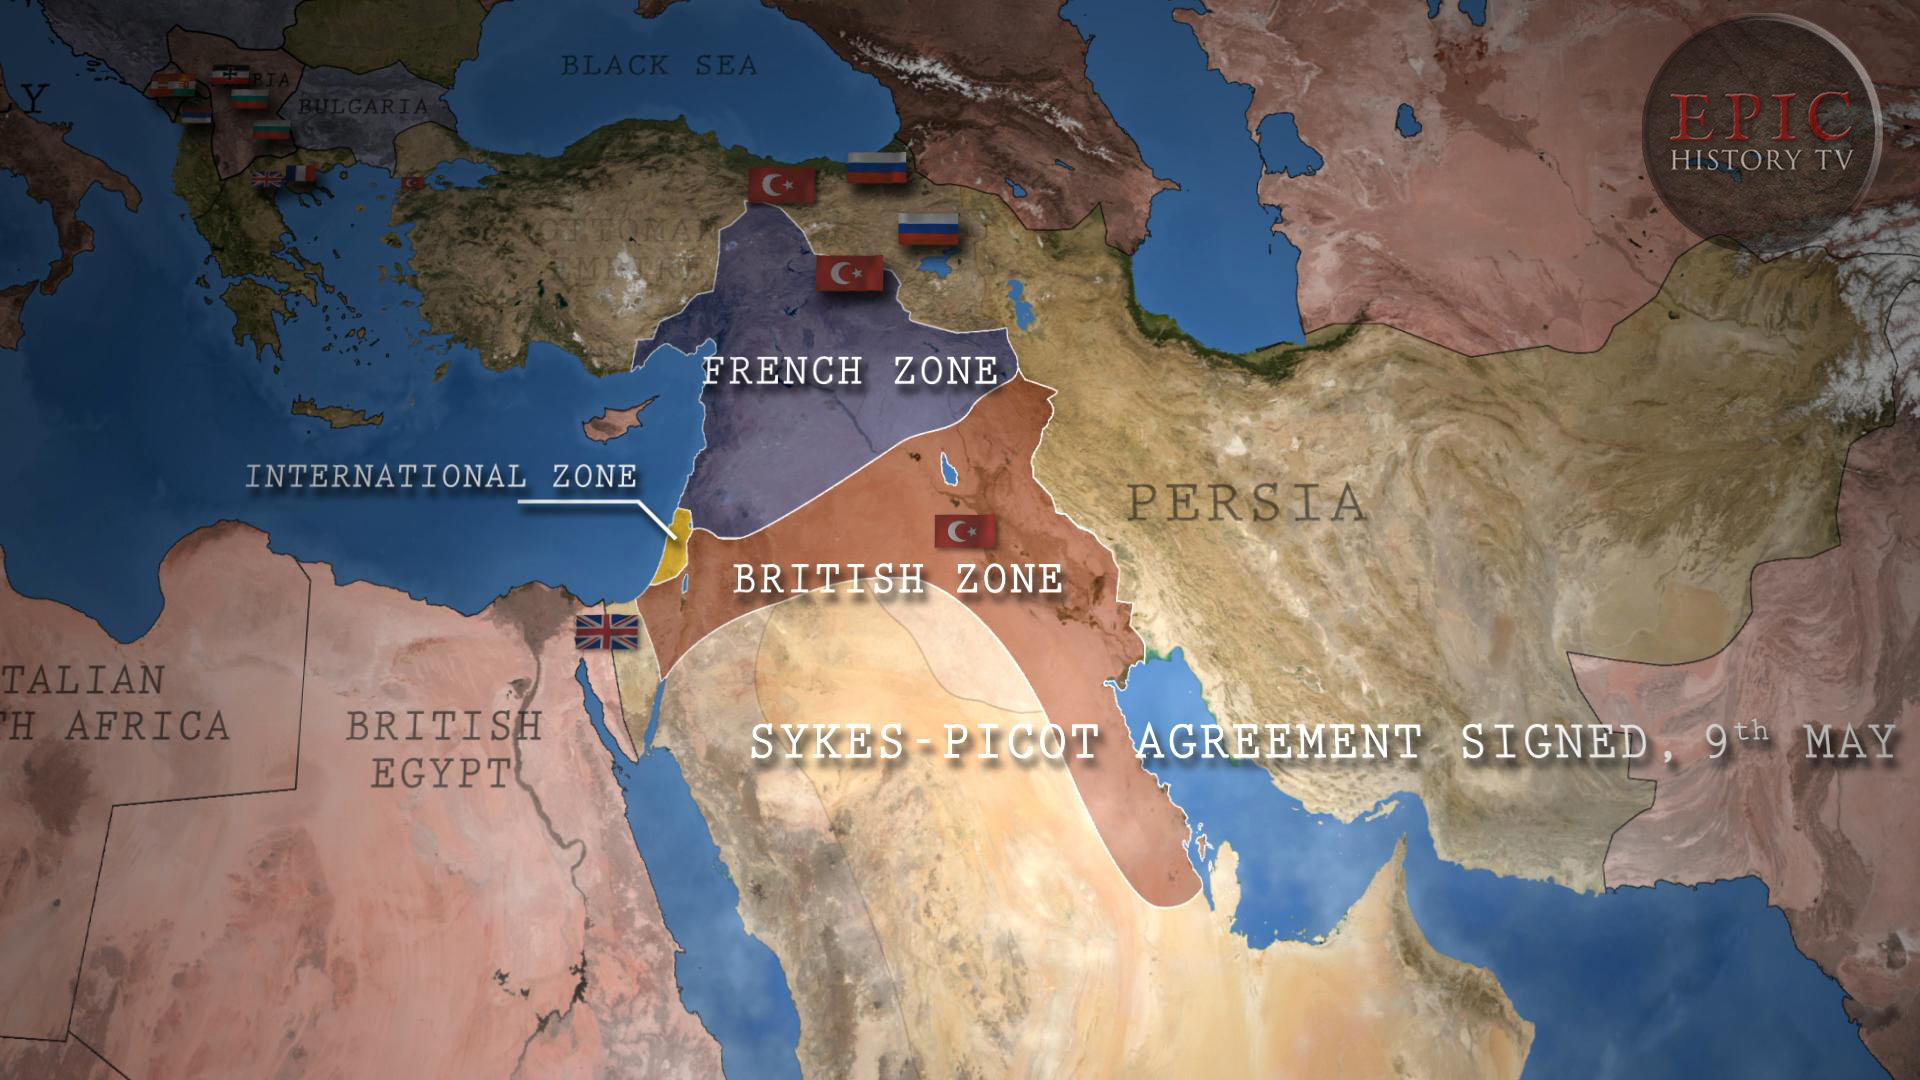 The Sykes-Picot Agreement was a secret arrangement between the British and French to divide the Middle East into 'zones of control' after World War One. The British had already promised Arab leaders that in return for their military support against the Ottoman Empire, they would ensure the creation of an independent Arab state after the war. But Sykes-Picot revealed that the colonial powers intended to keep firm control of much of the region.This breach of trust, and the arbitrary creation of new national borders in the Middle East, set the scene for a century of instability and conflict in the Middle East.  WATCH THE VIDEO